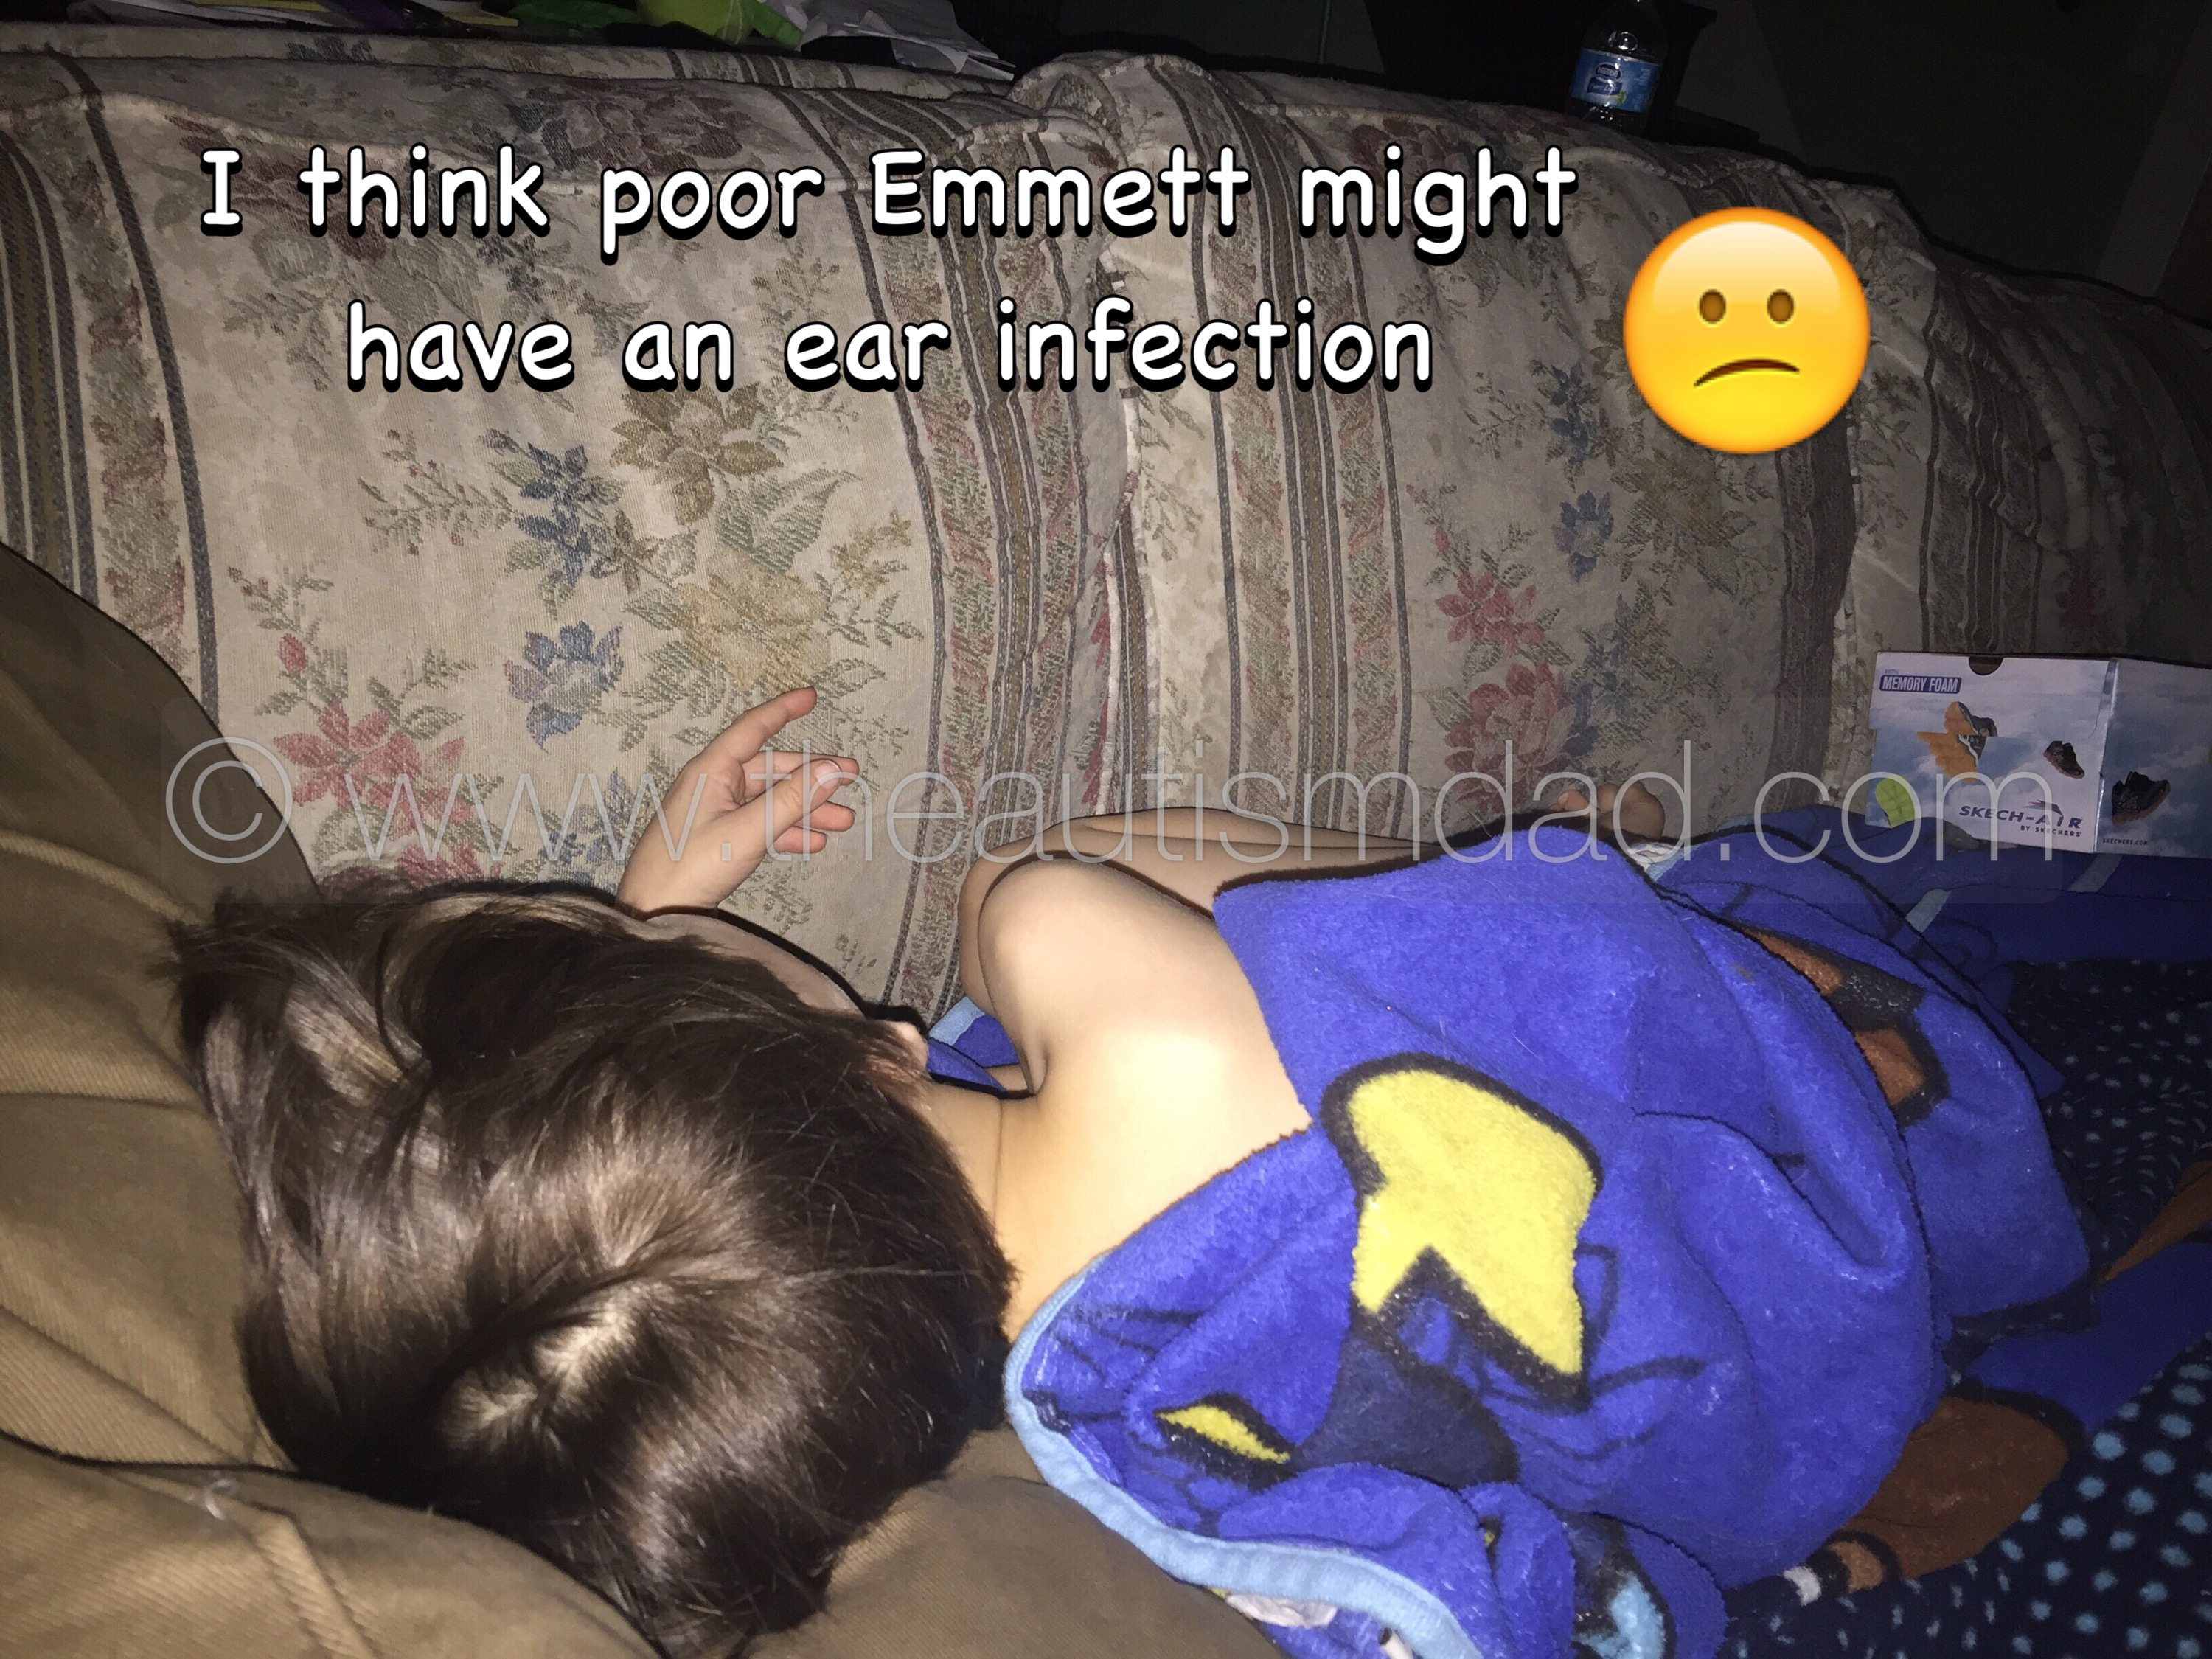 I think poor Emmett might have an ear infection